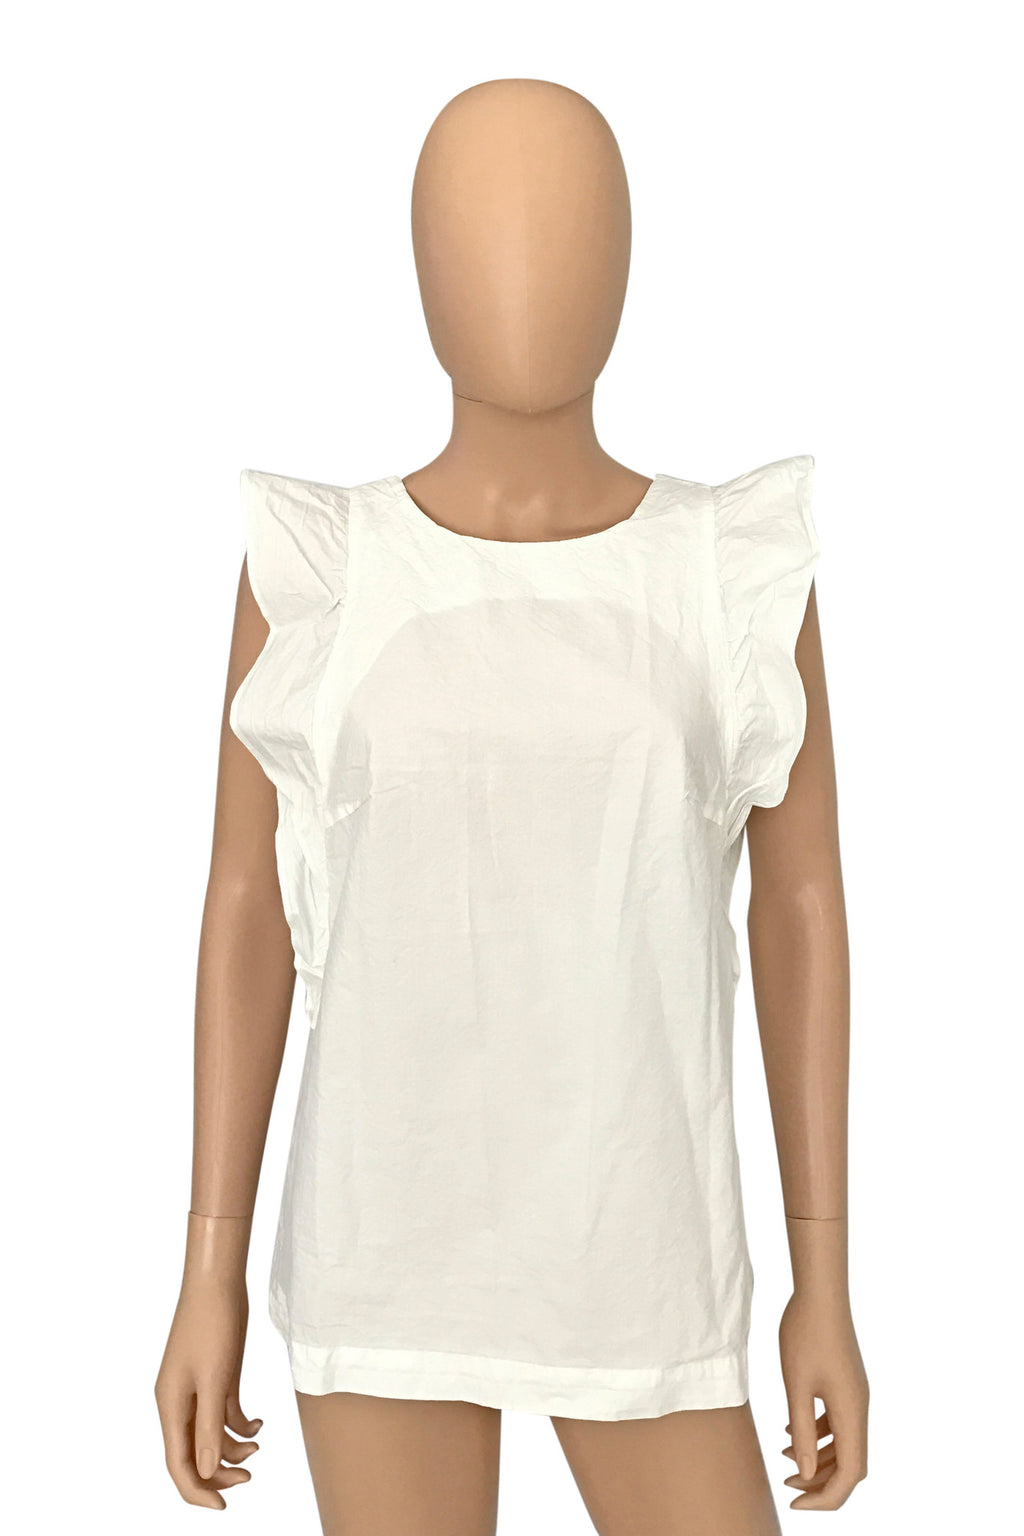 M.I.H. Jeans Ruffled Off-White Cotton Caval Top / Sz S-Style Therapy